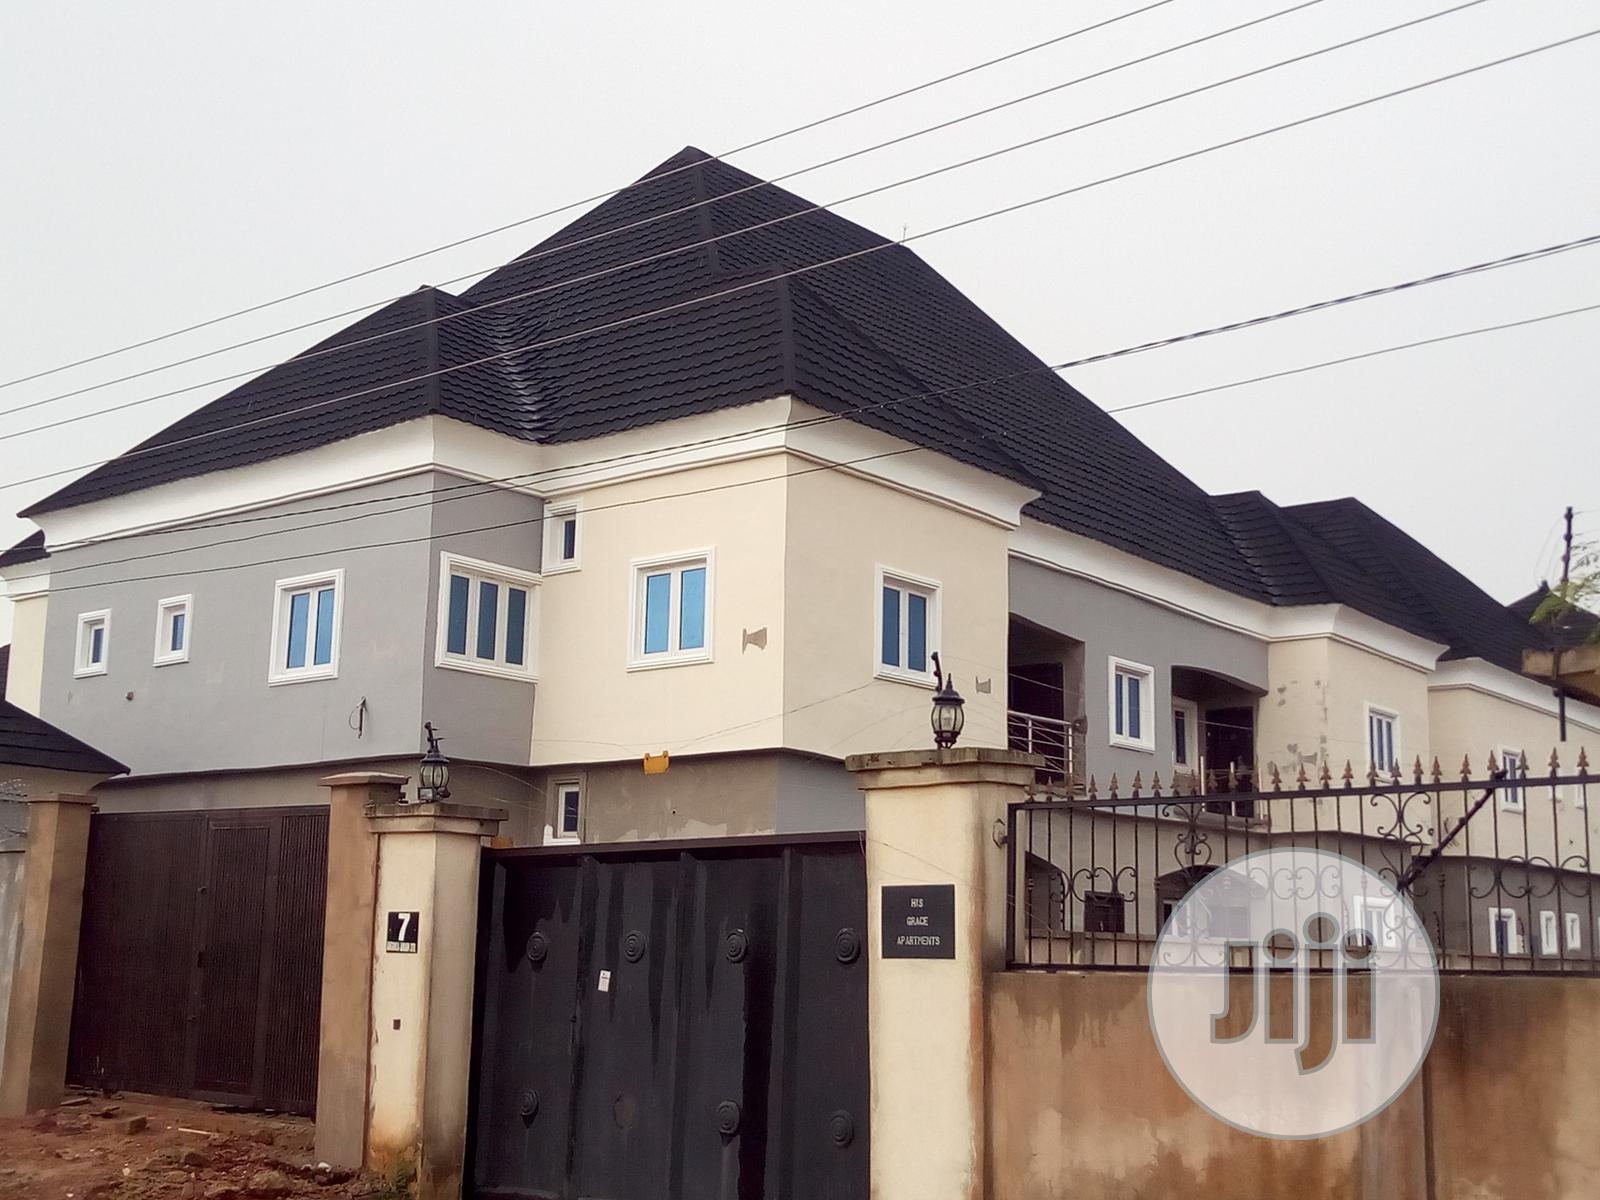 3 Bedroom Flat   Houses & Apartments For Rent for sale in Kosofe, Lagos State, Nigeria